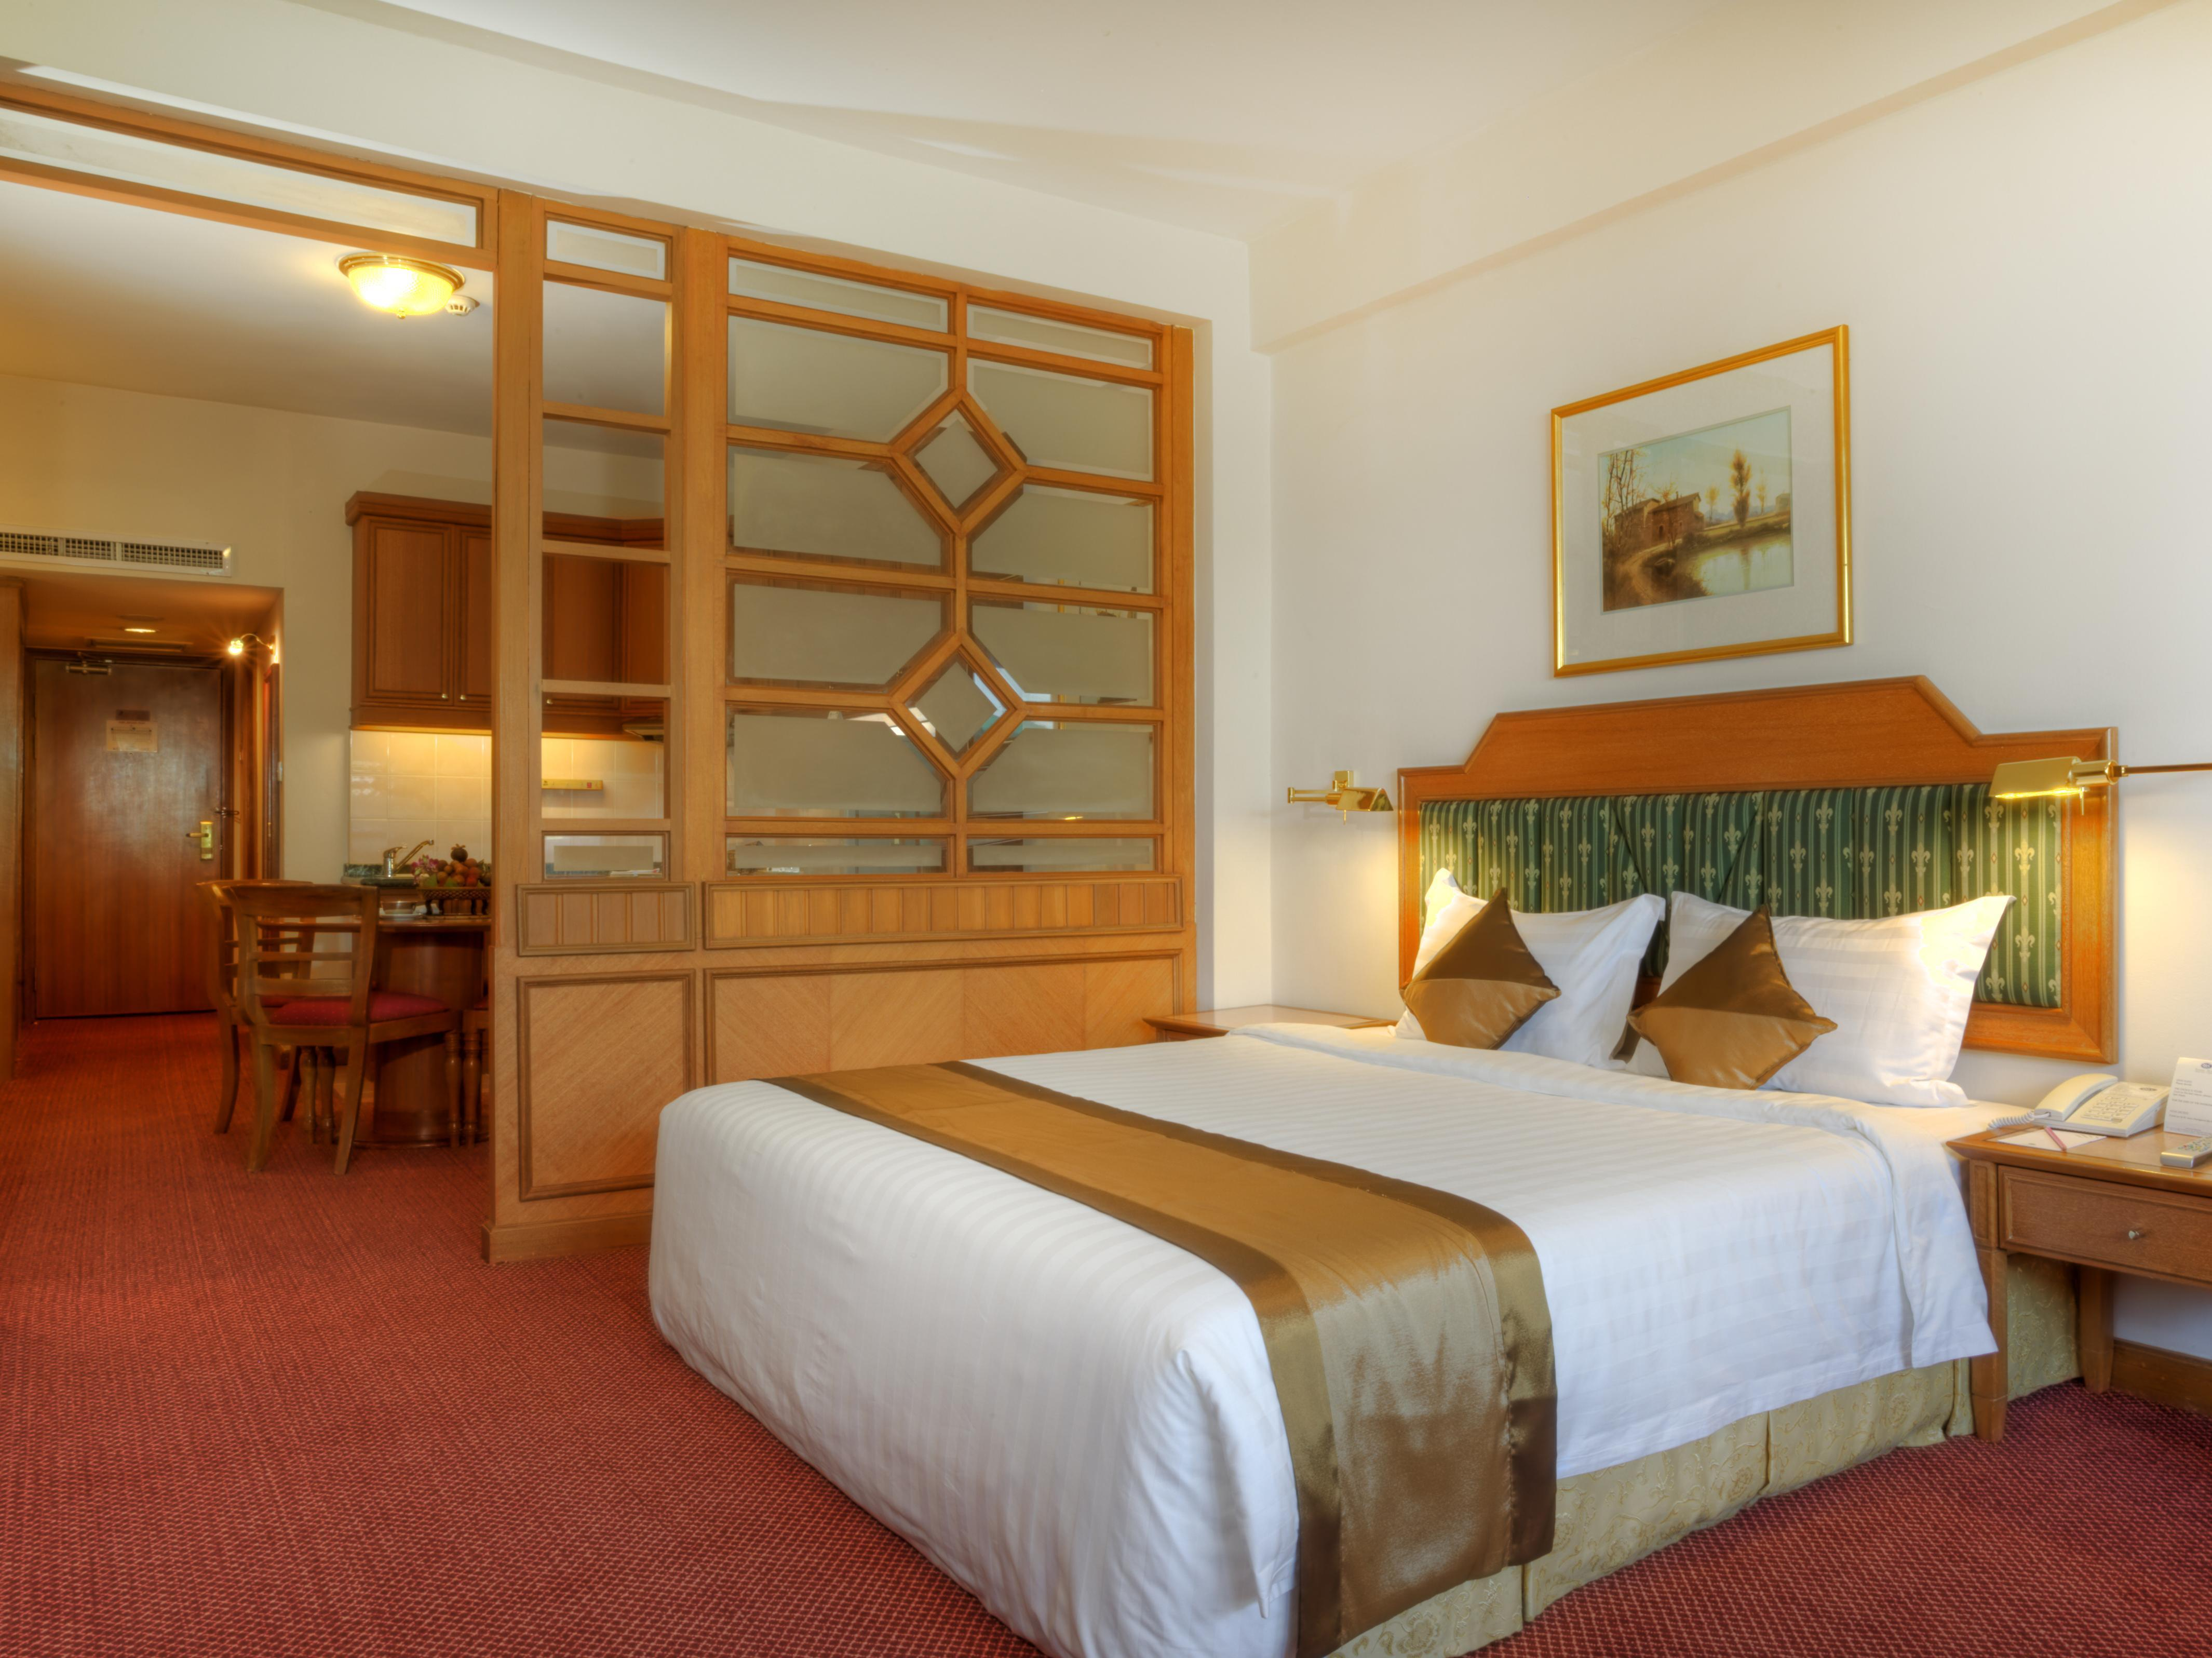 Image from Sunway Hotels & Resorts